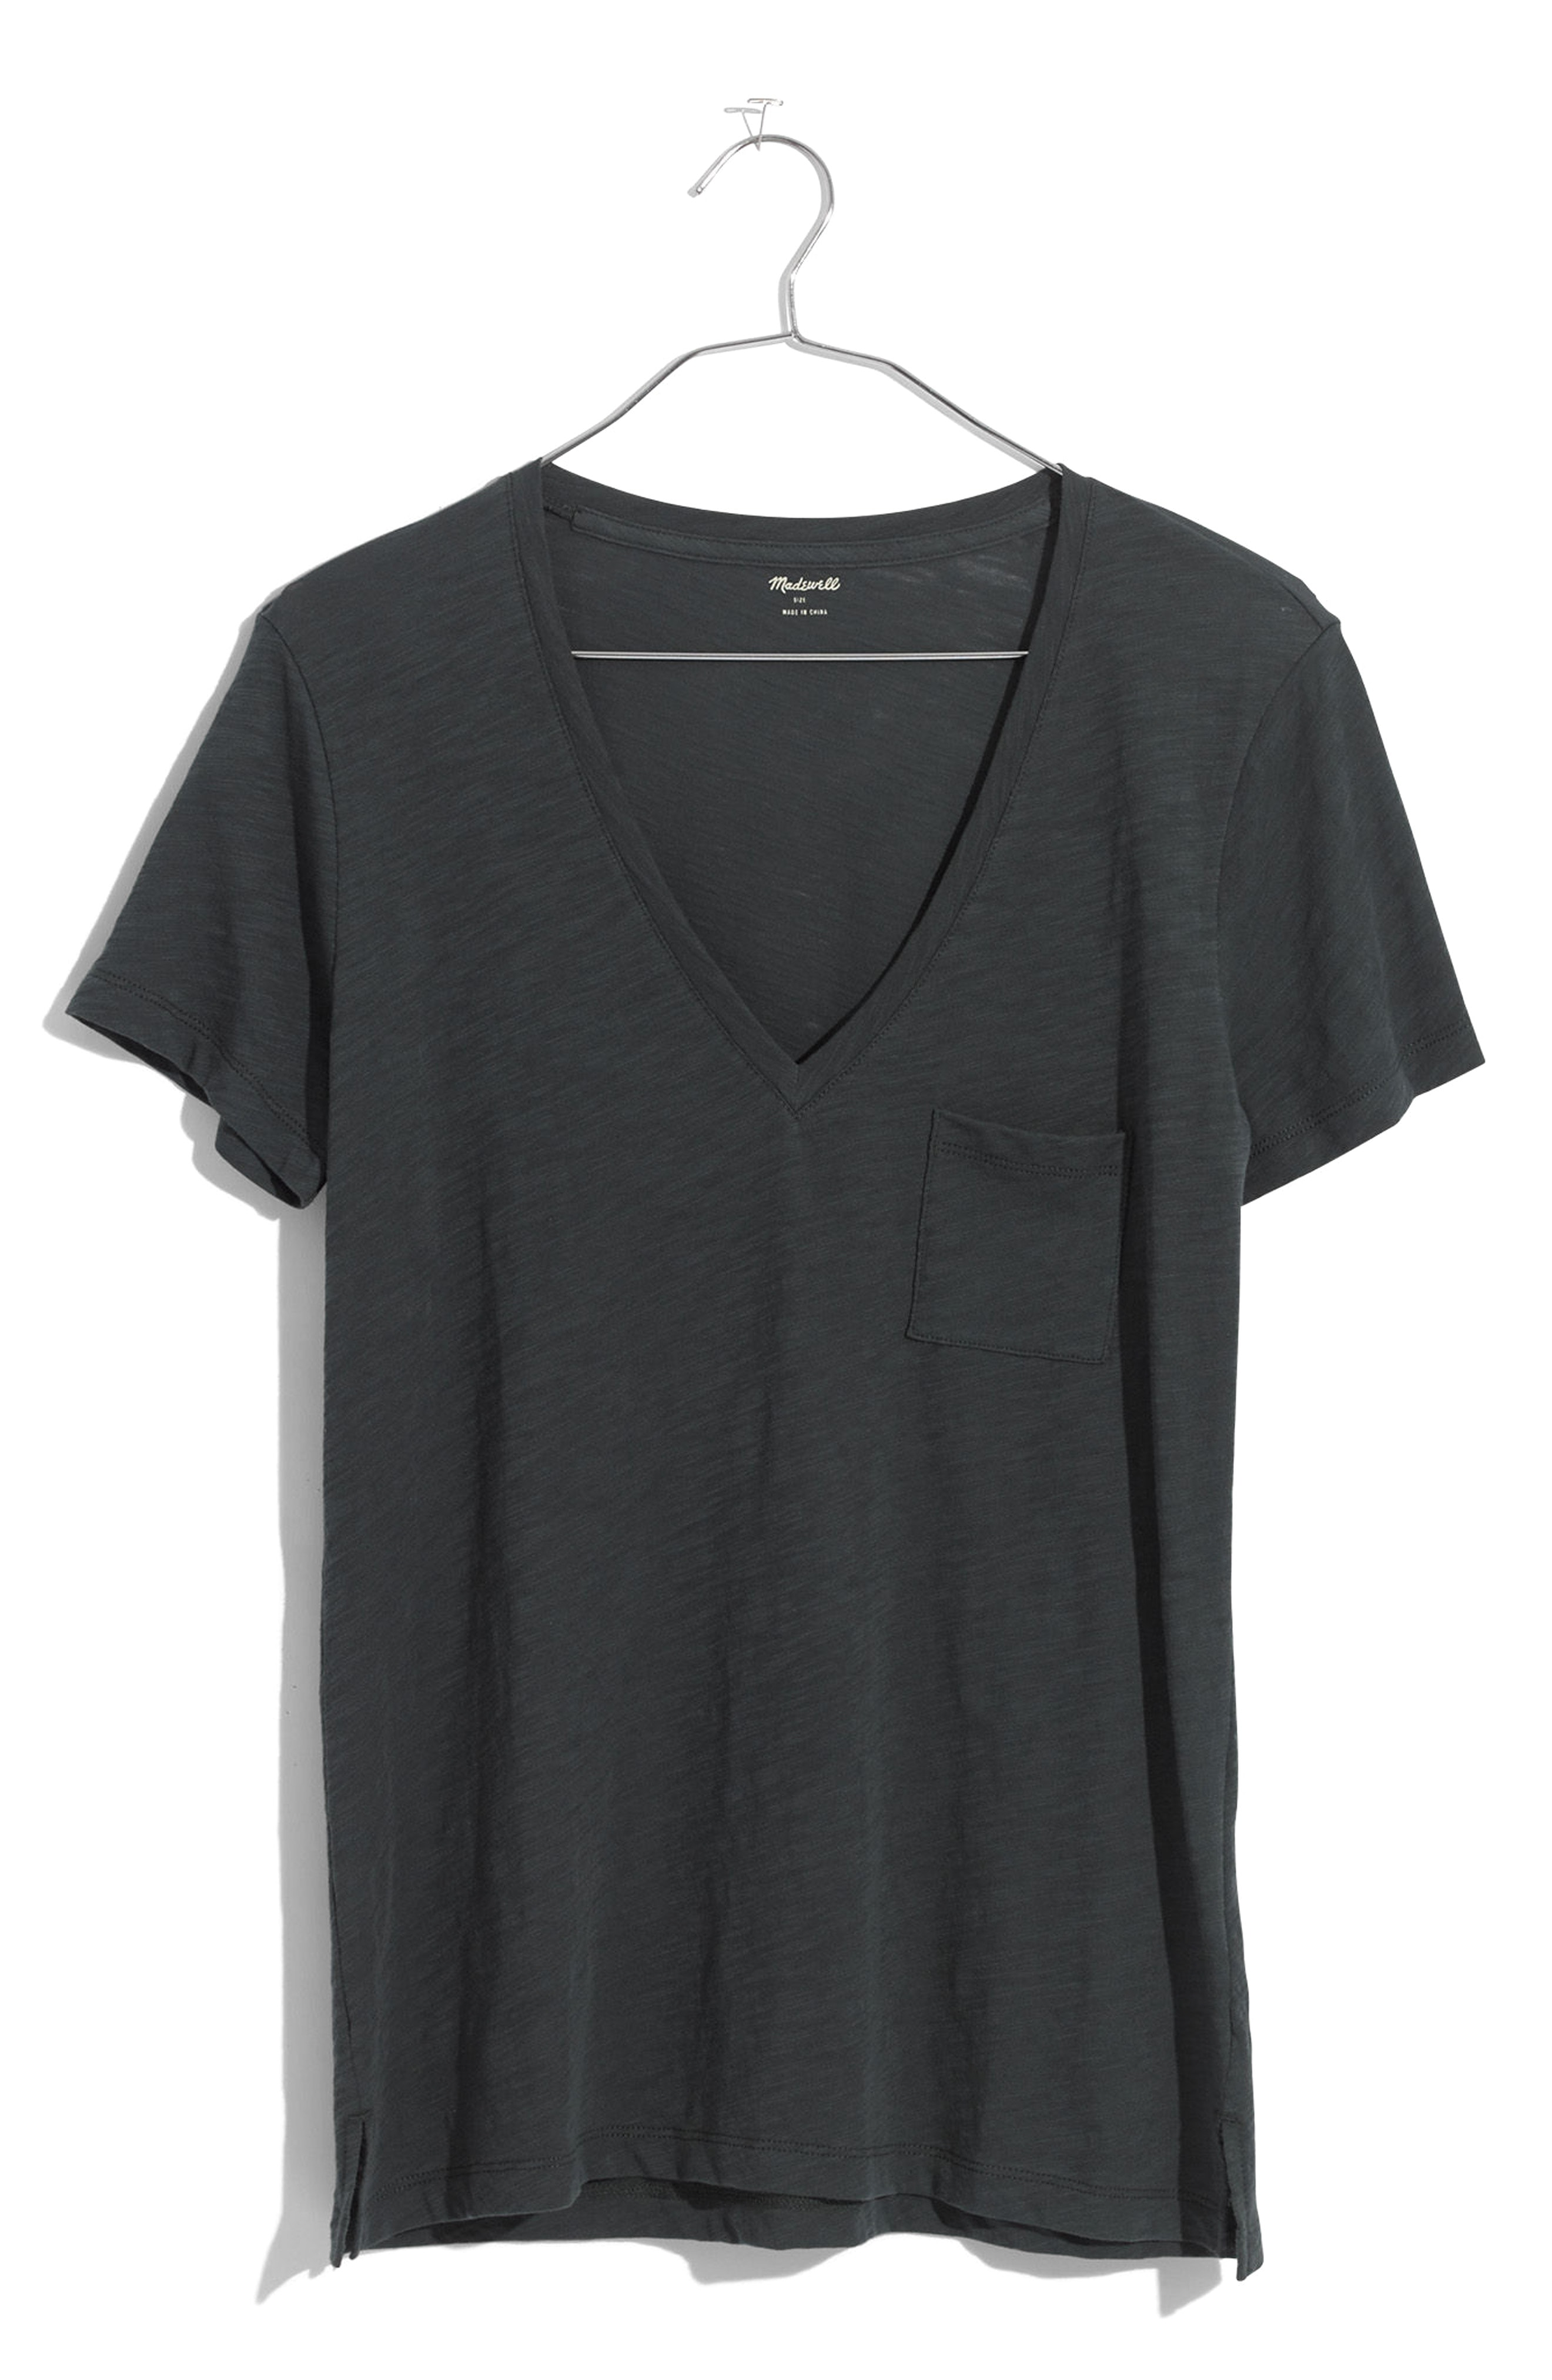 Women's Tops | Nordstrom